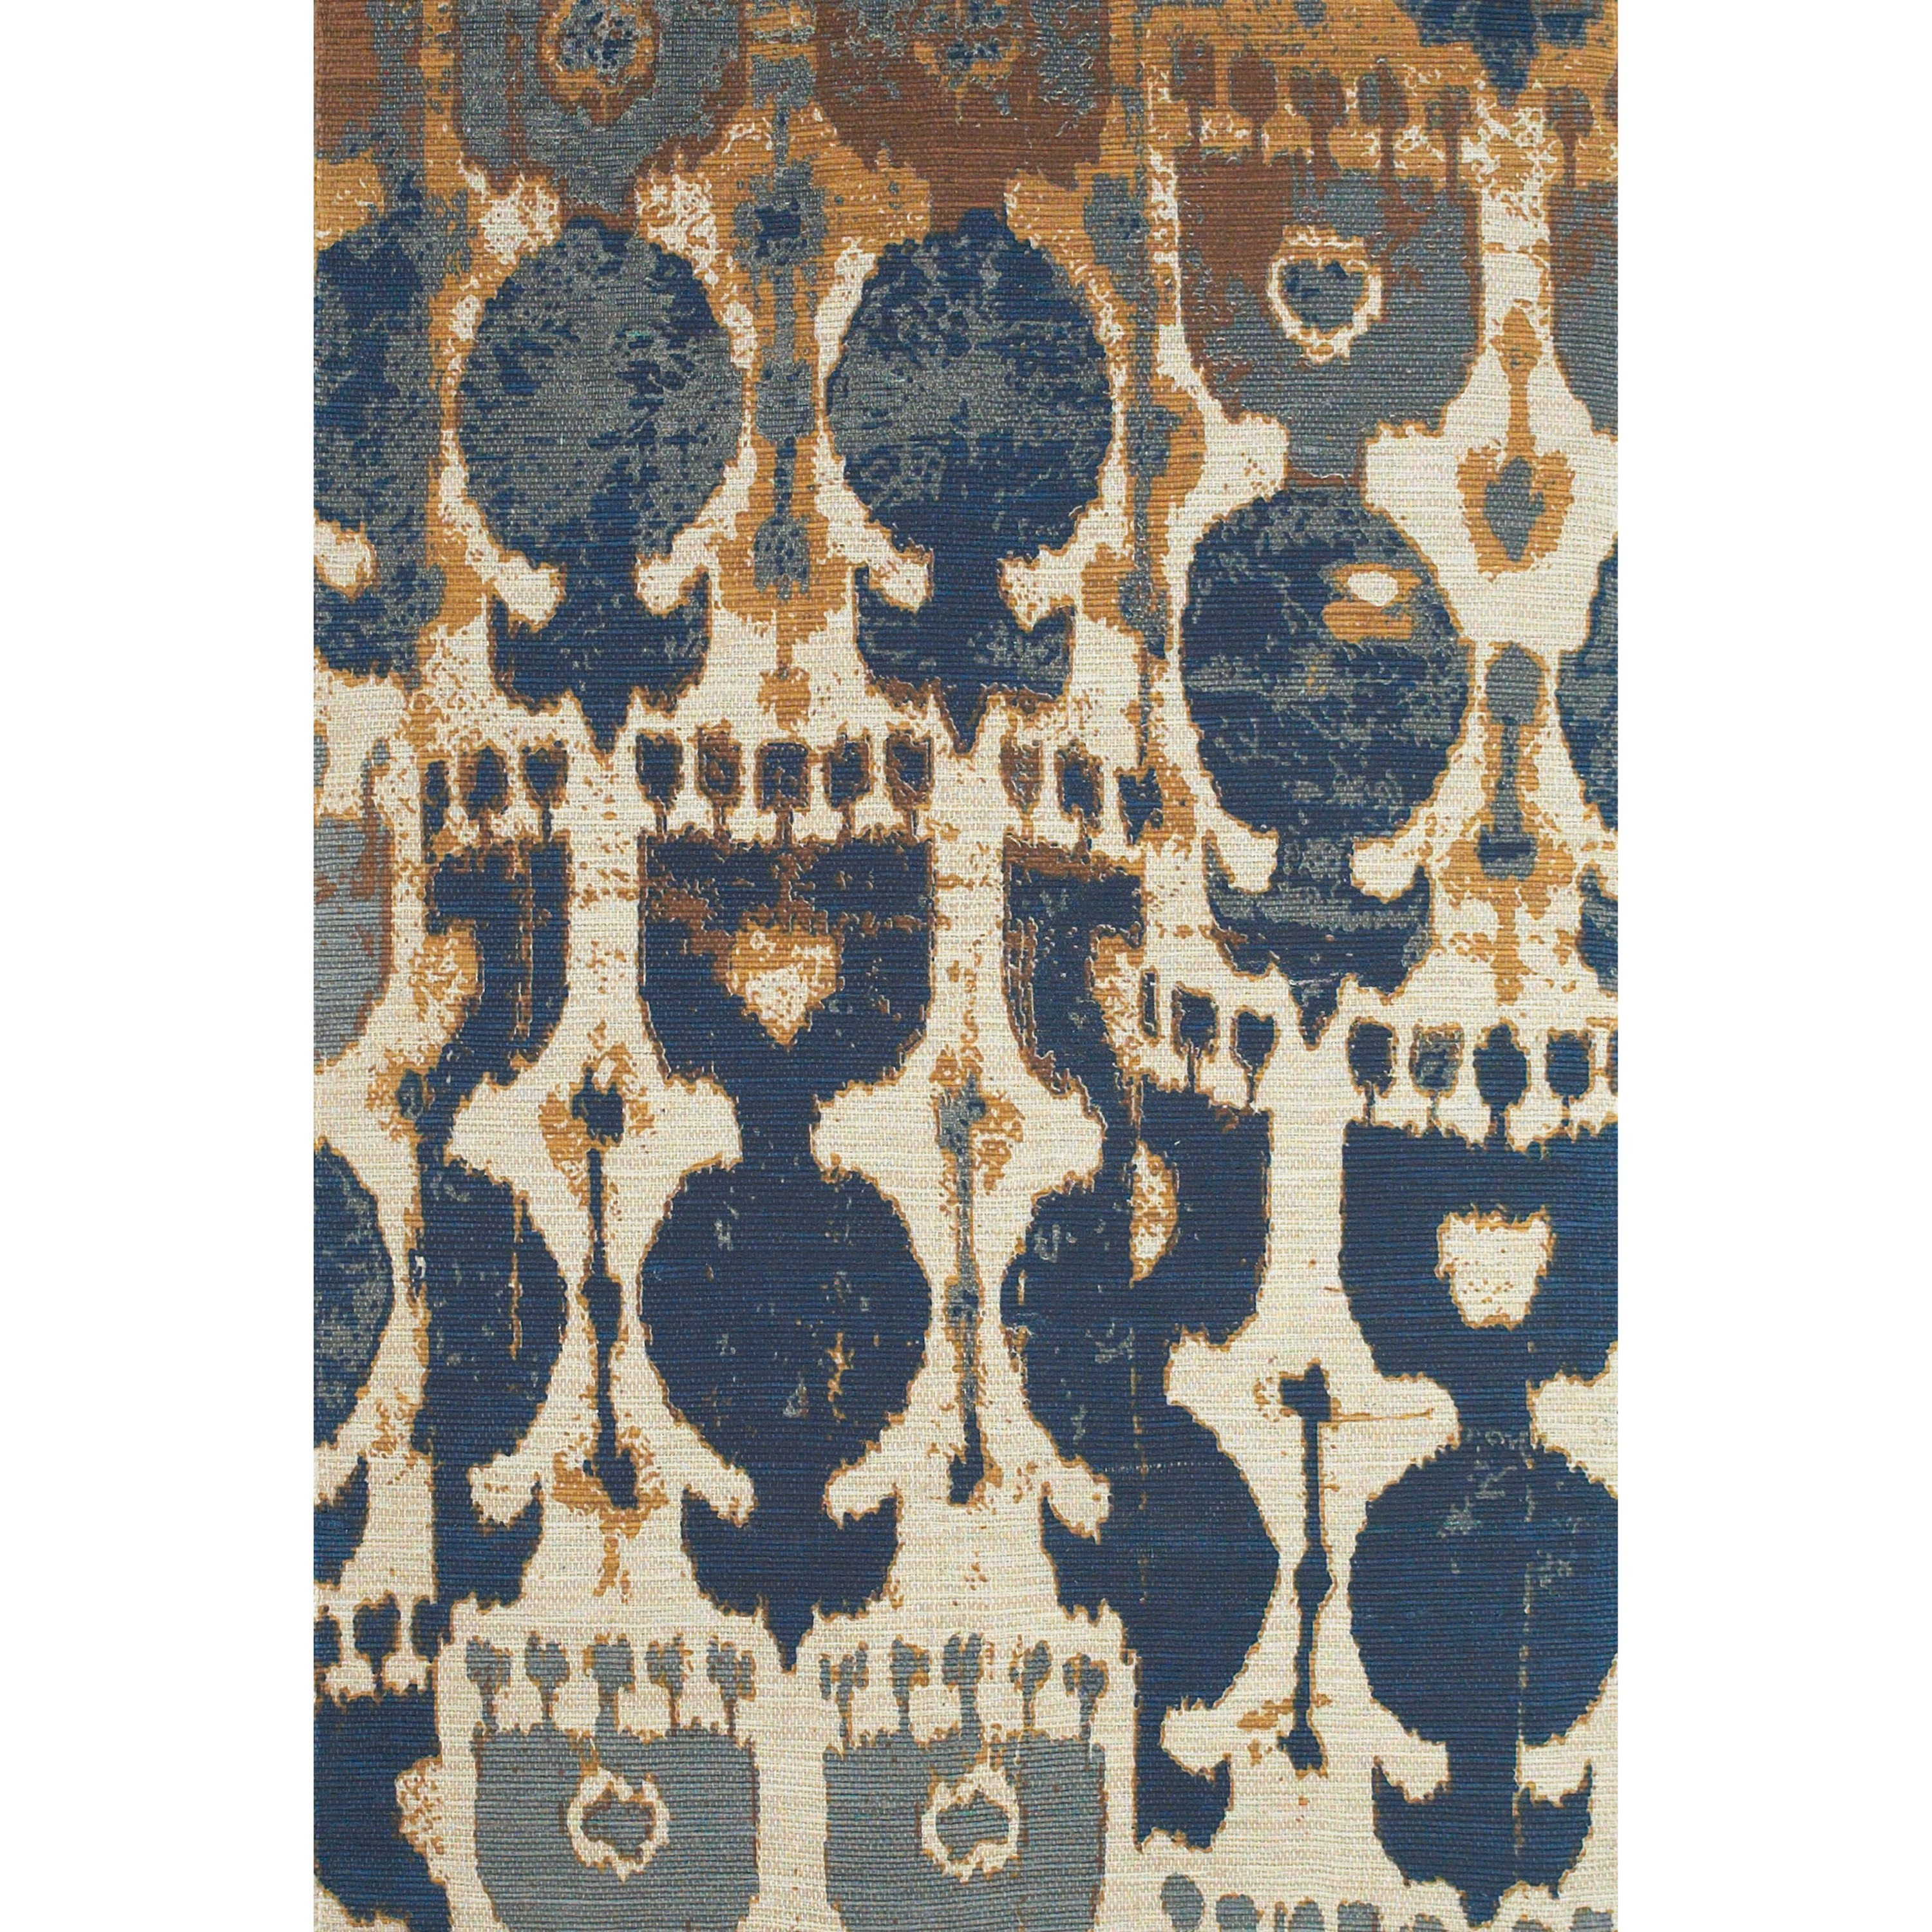 Coronado Navy/Copper 4' x 6' Area Rug by Feizy Rugs at Sprintz Furniture